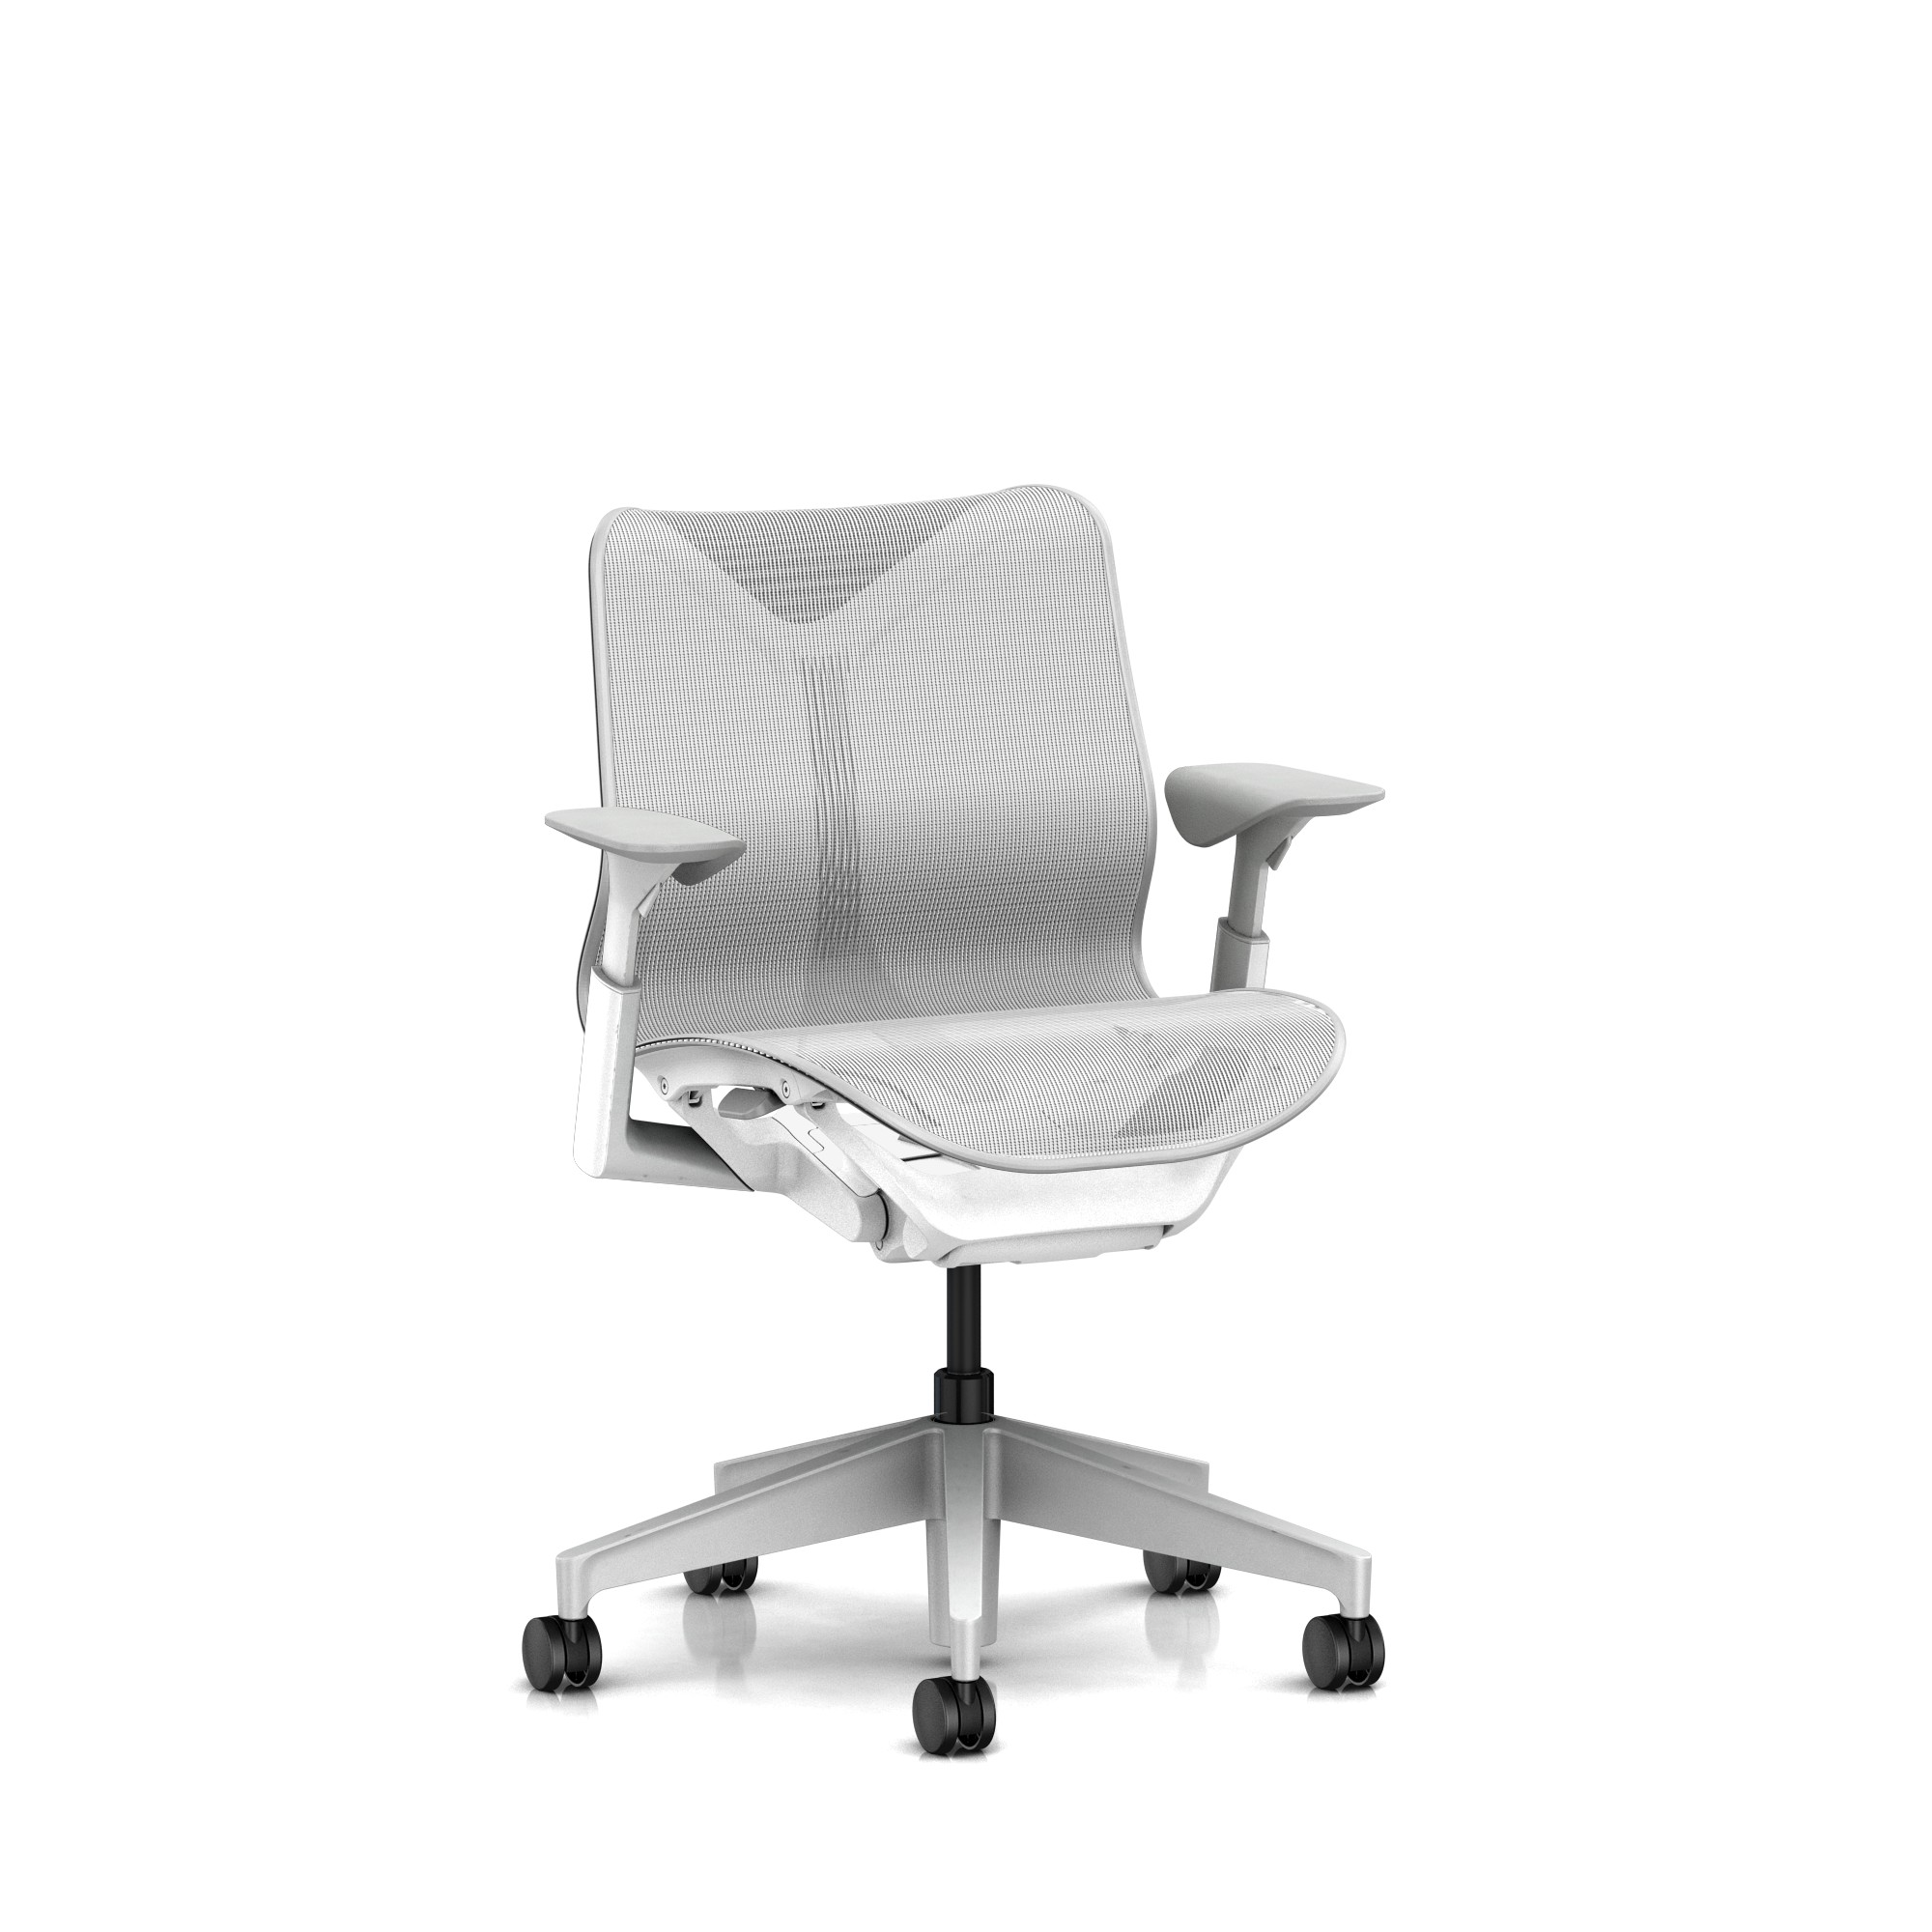 Cosm Chair in Studio White Low Back Height by Herman Miller